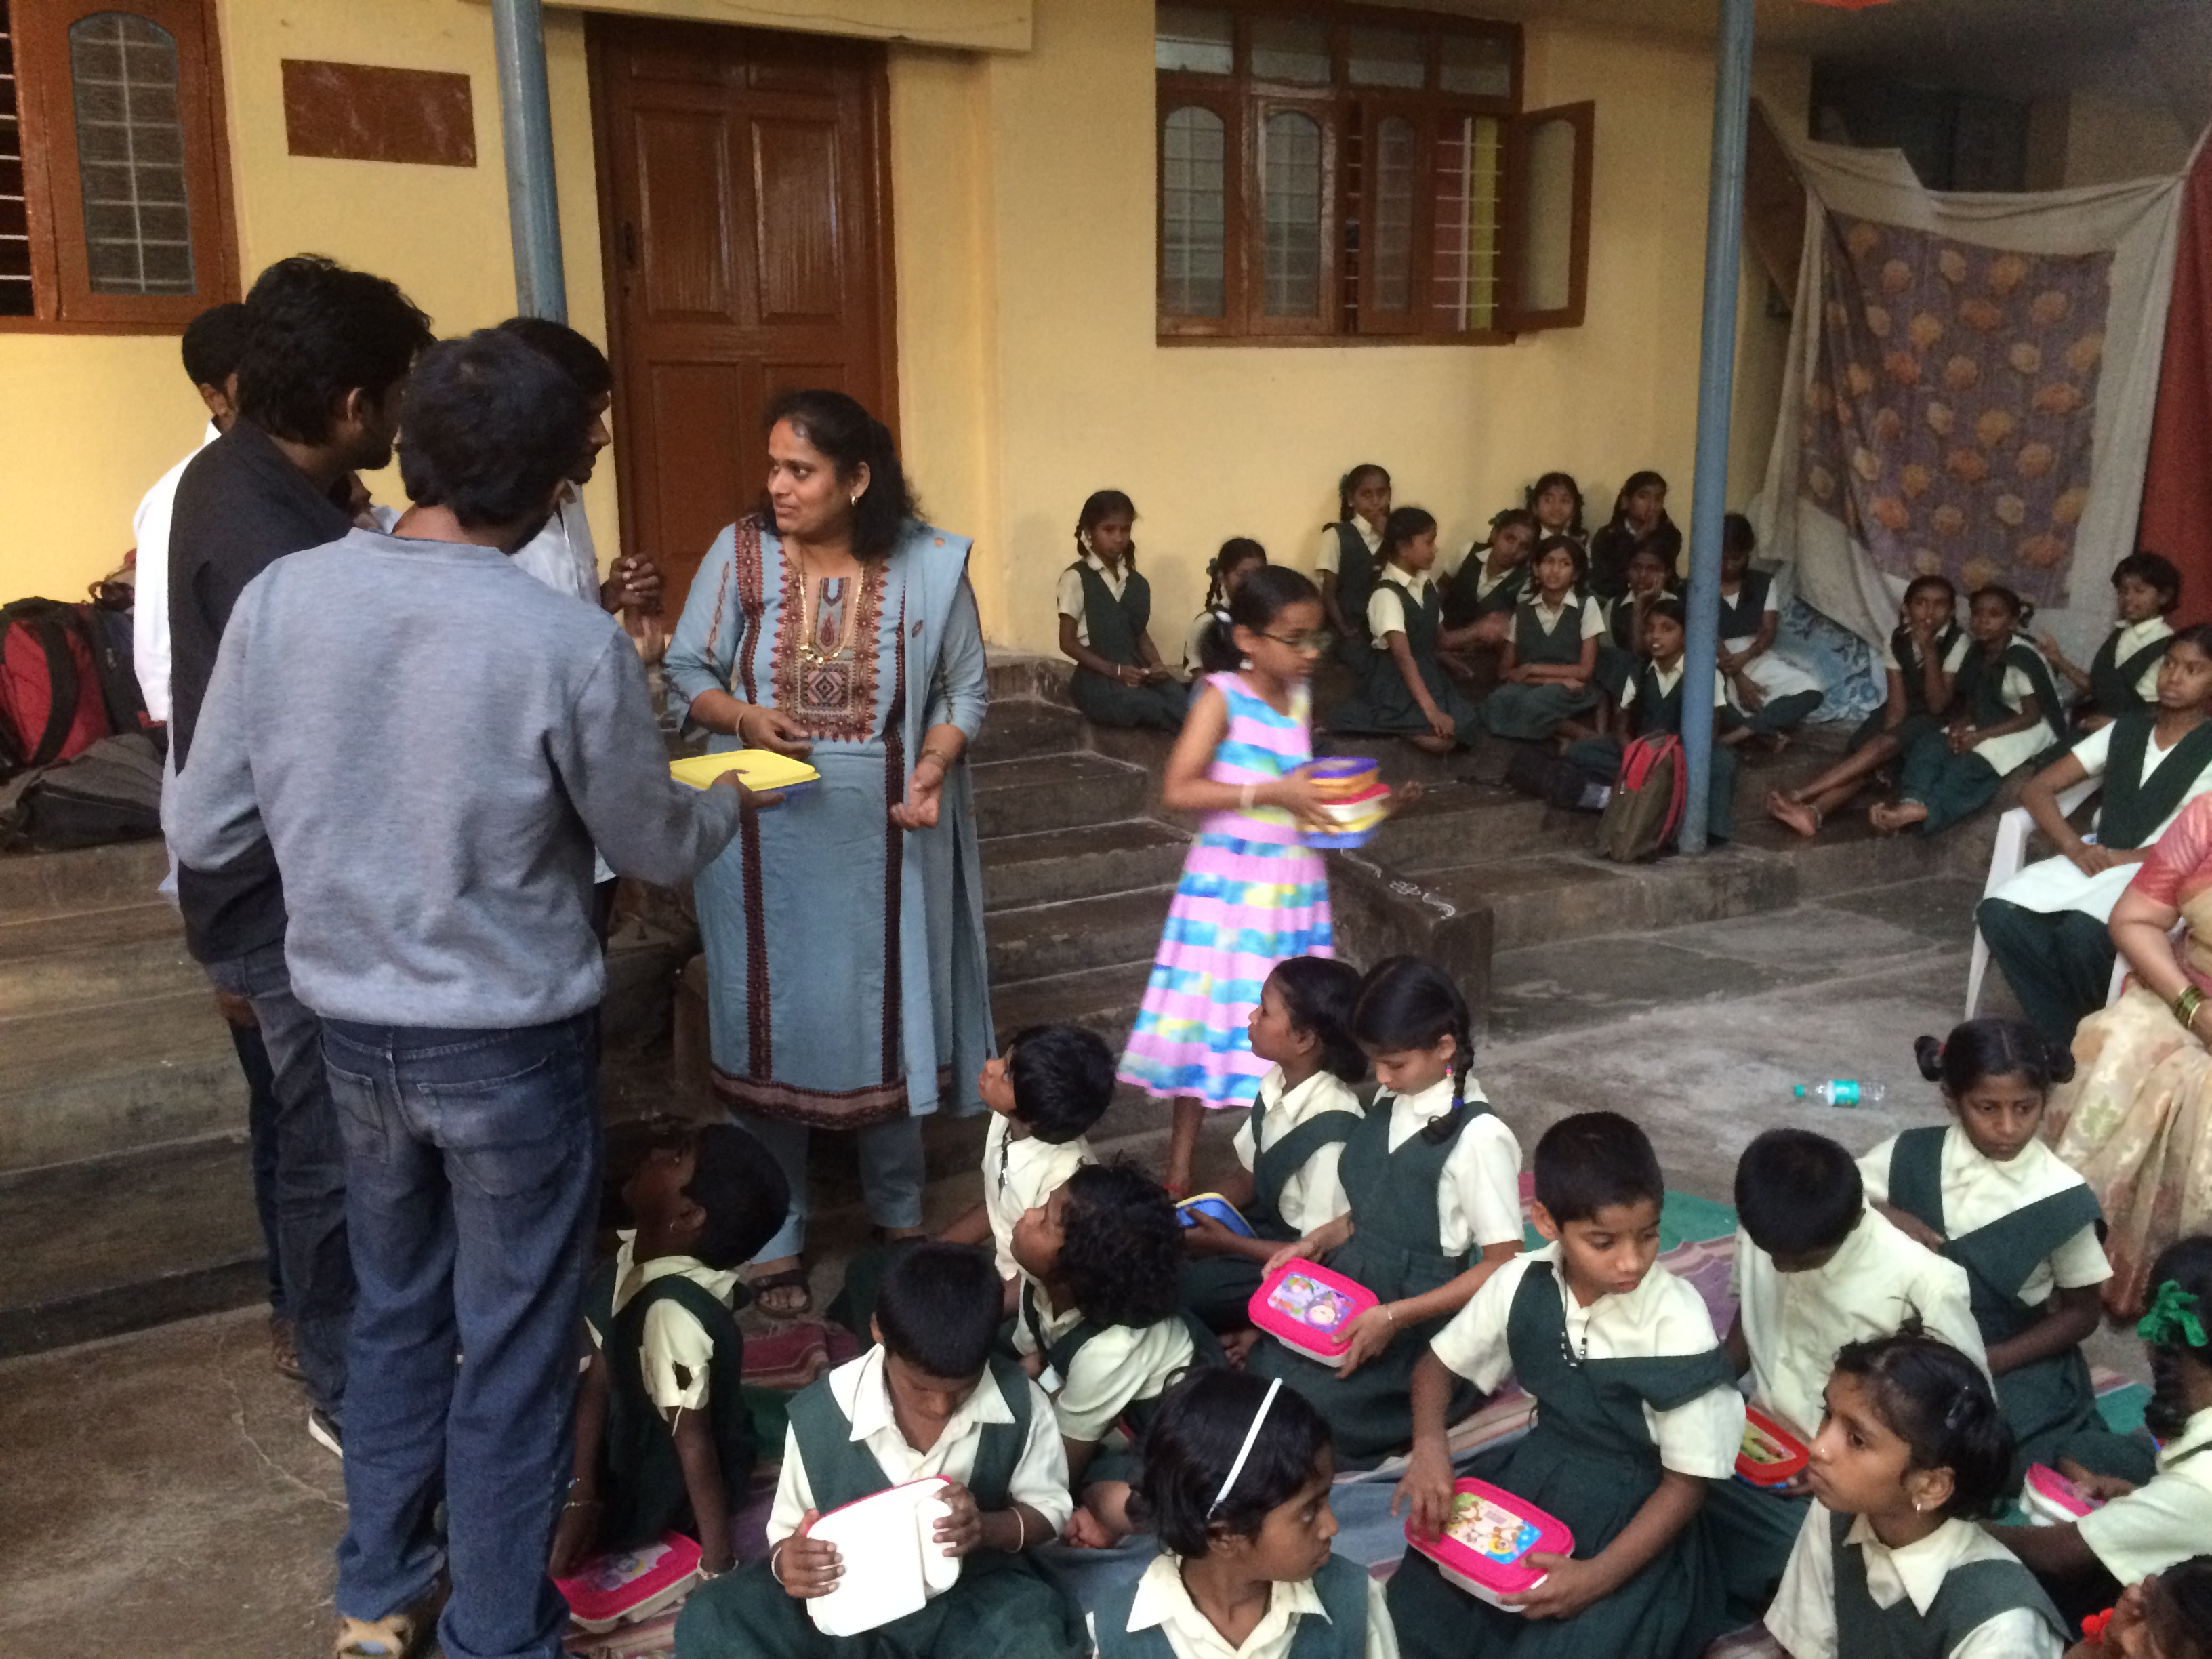 jyotsna-with-her-daughter-delivering-gifts-to-orphans